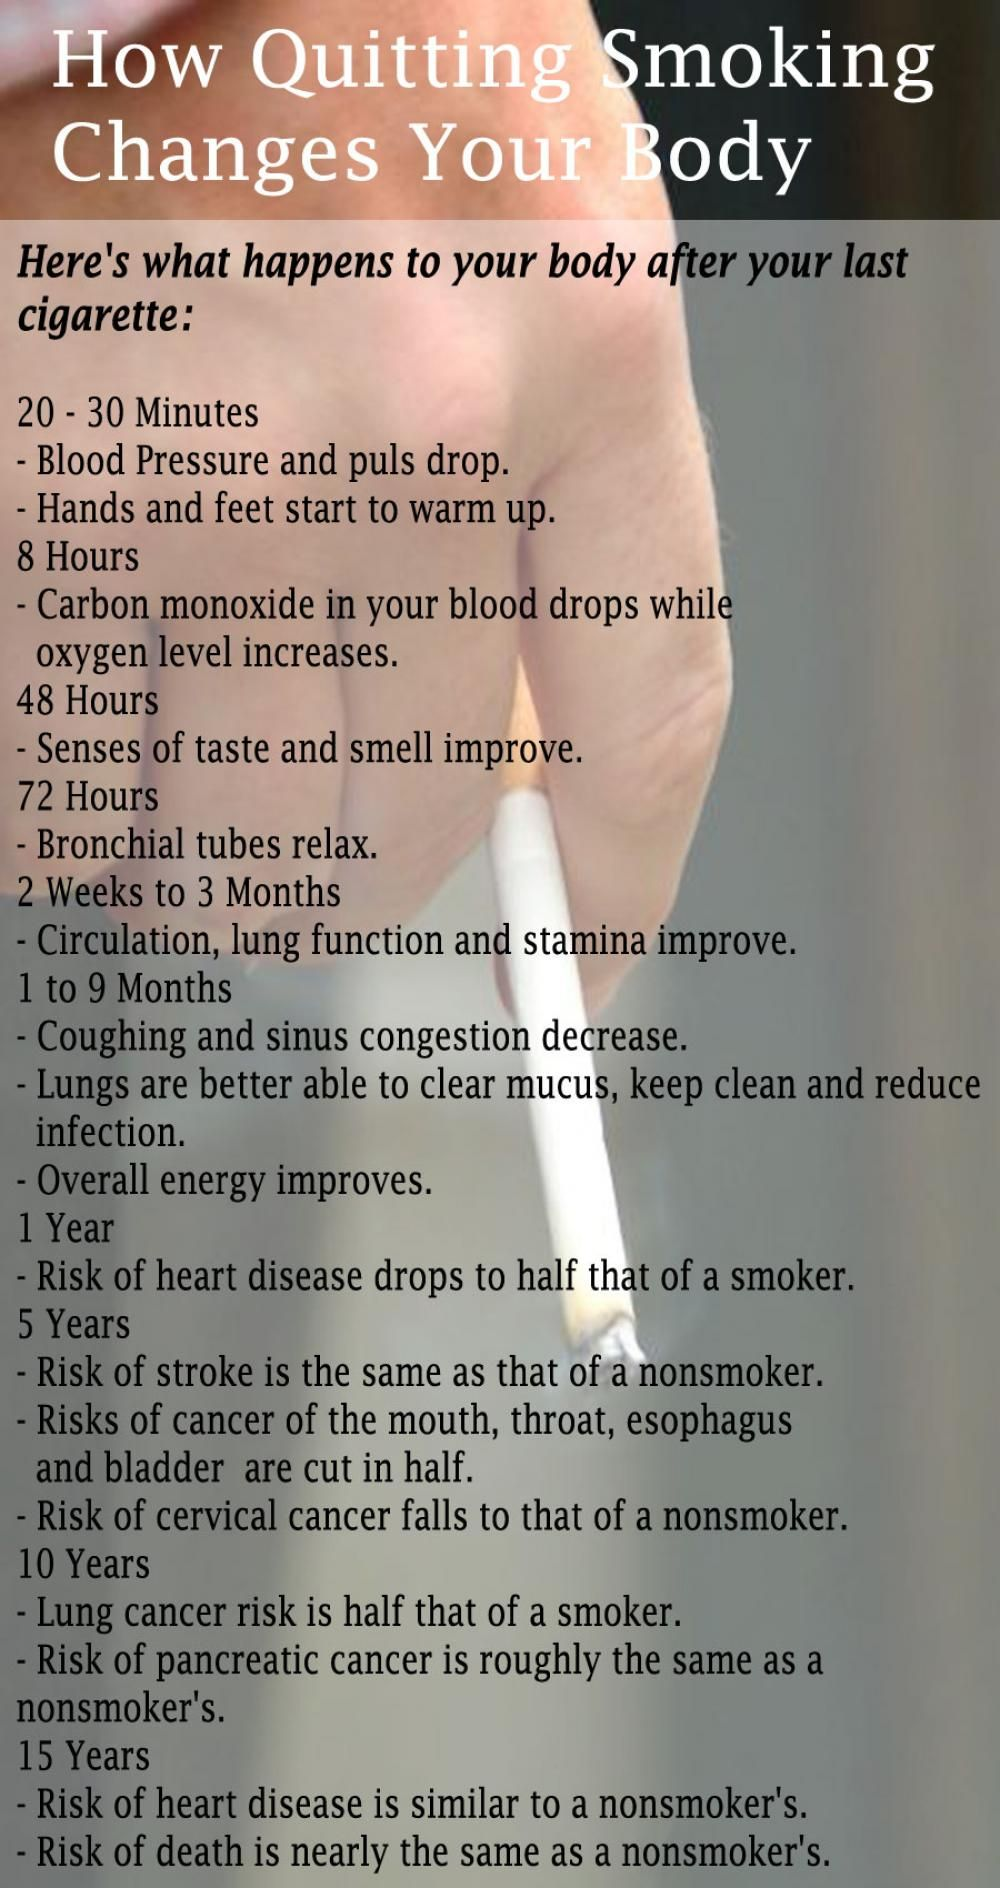 Here's what happens to your body after your last cigarette  #health #fitness #publichealth #smoking #tobacco #healthyliving  http://bit.ly/1MYRlmj